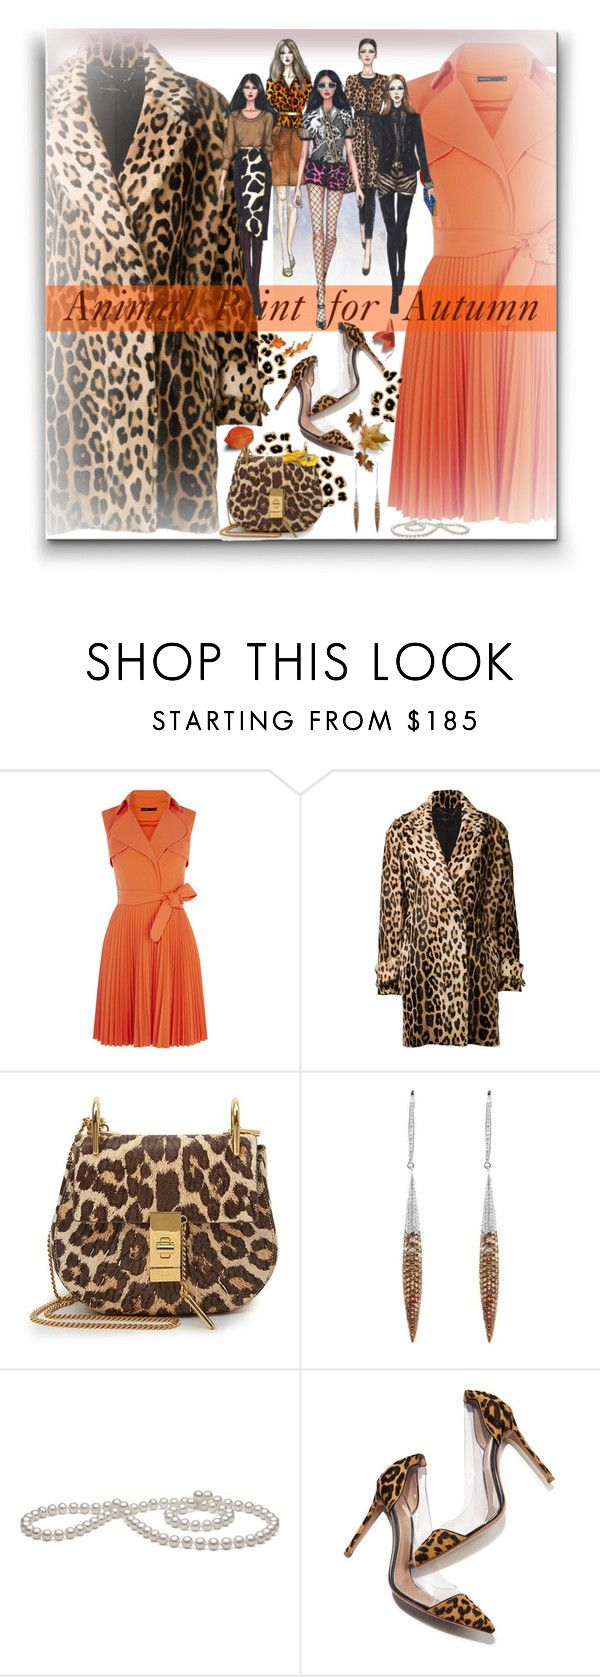 """Animal Print for Autumn"" by fassionista ❤ liked on Polyvore featuring Barbara Bui, Chloé, Salavetti and Gianvito Rossi"